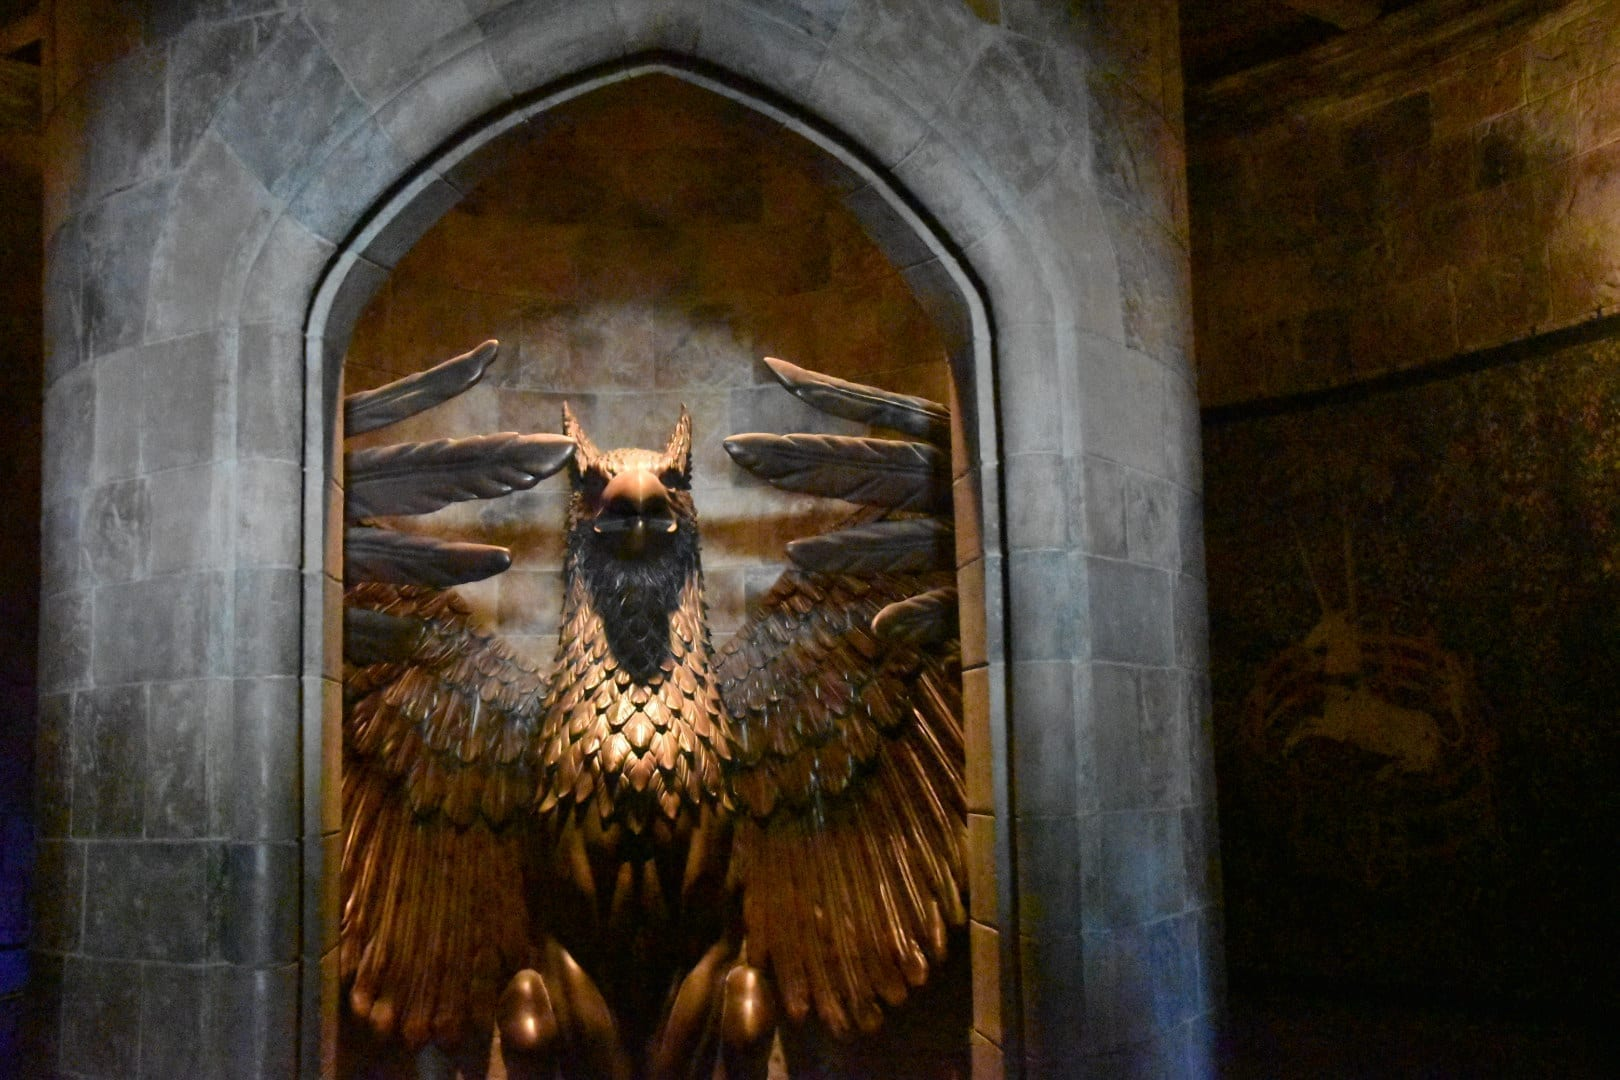 Forbidding Journey ride at Harry Potter World